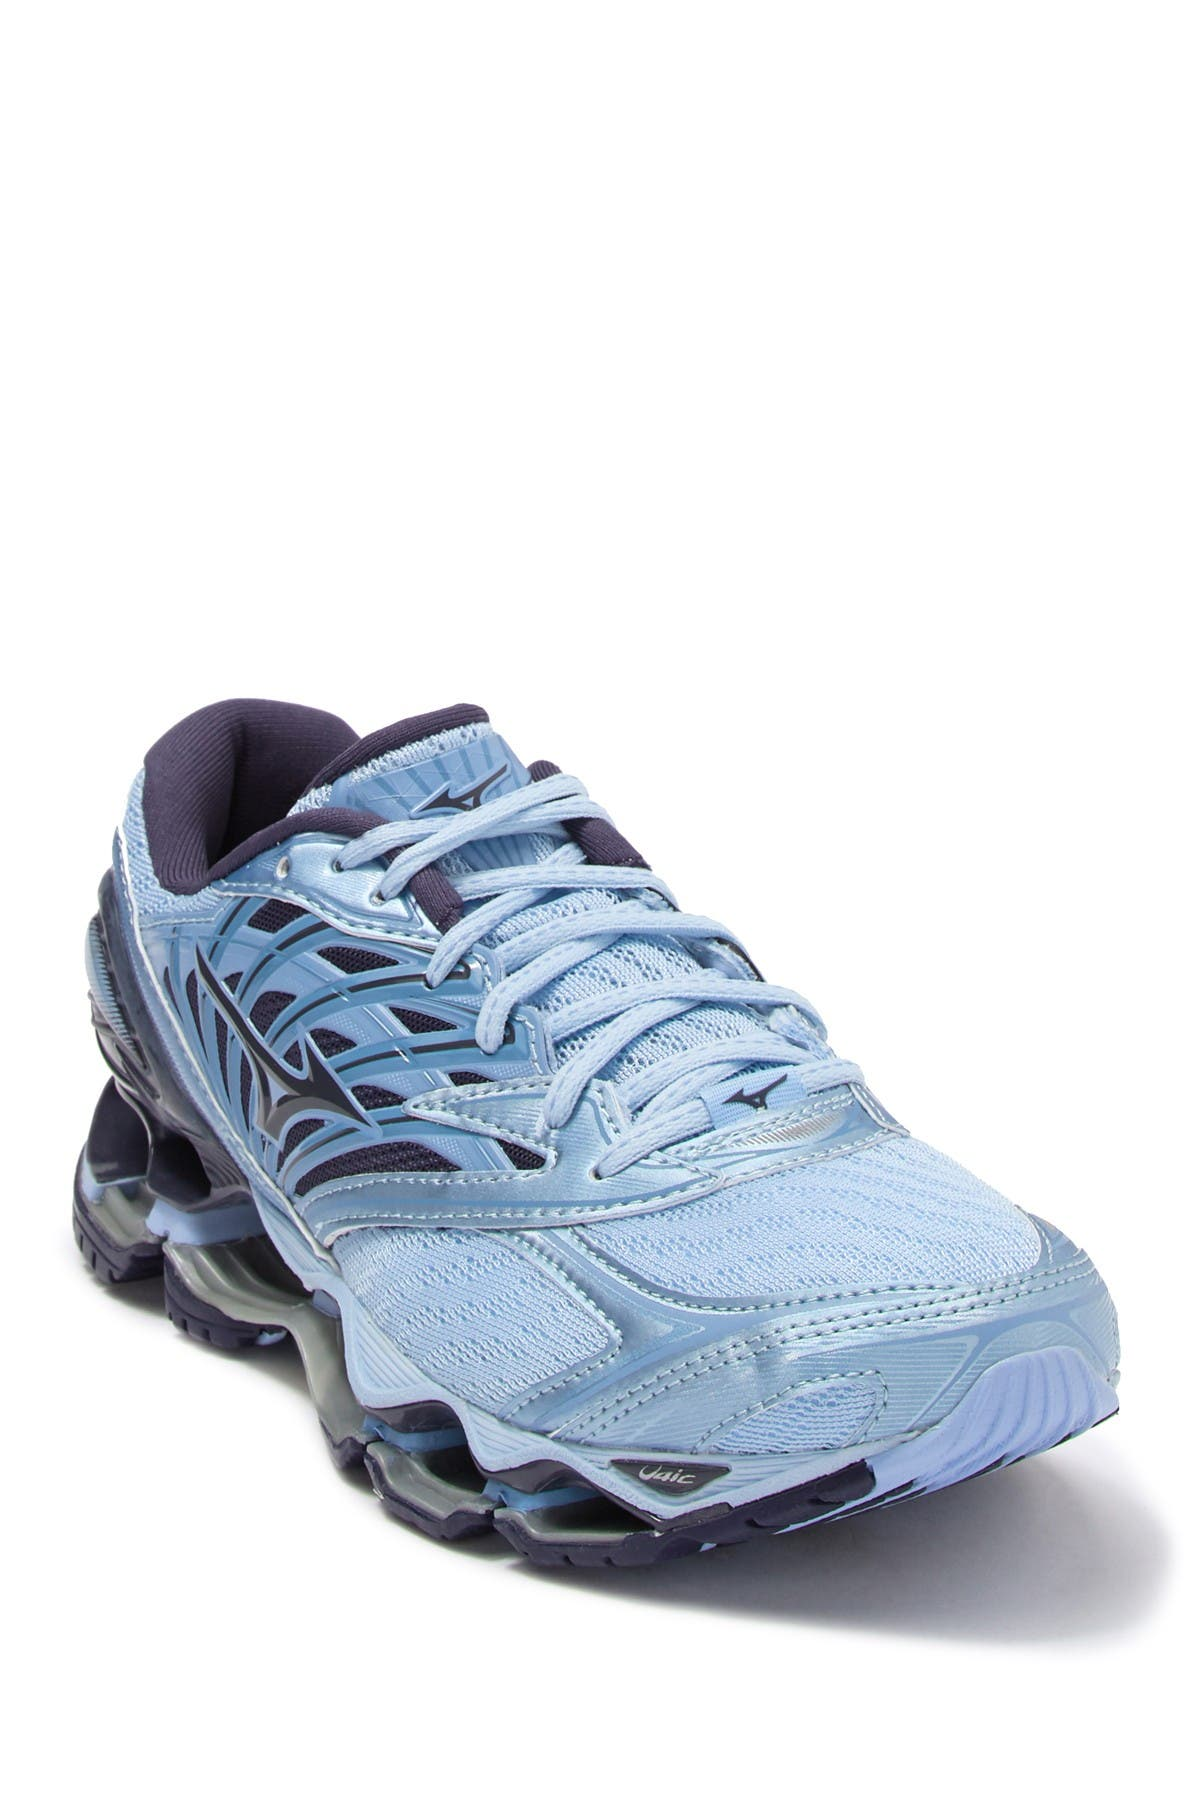 Image of Mizuno Wave Prophecy 8 Running Sneaker